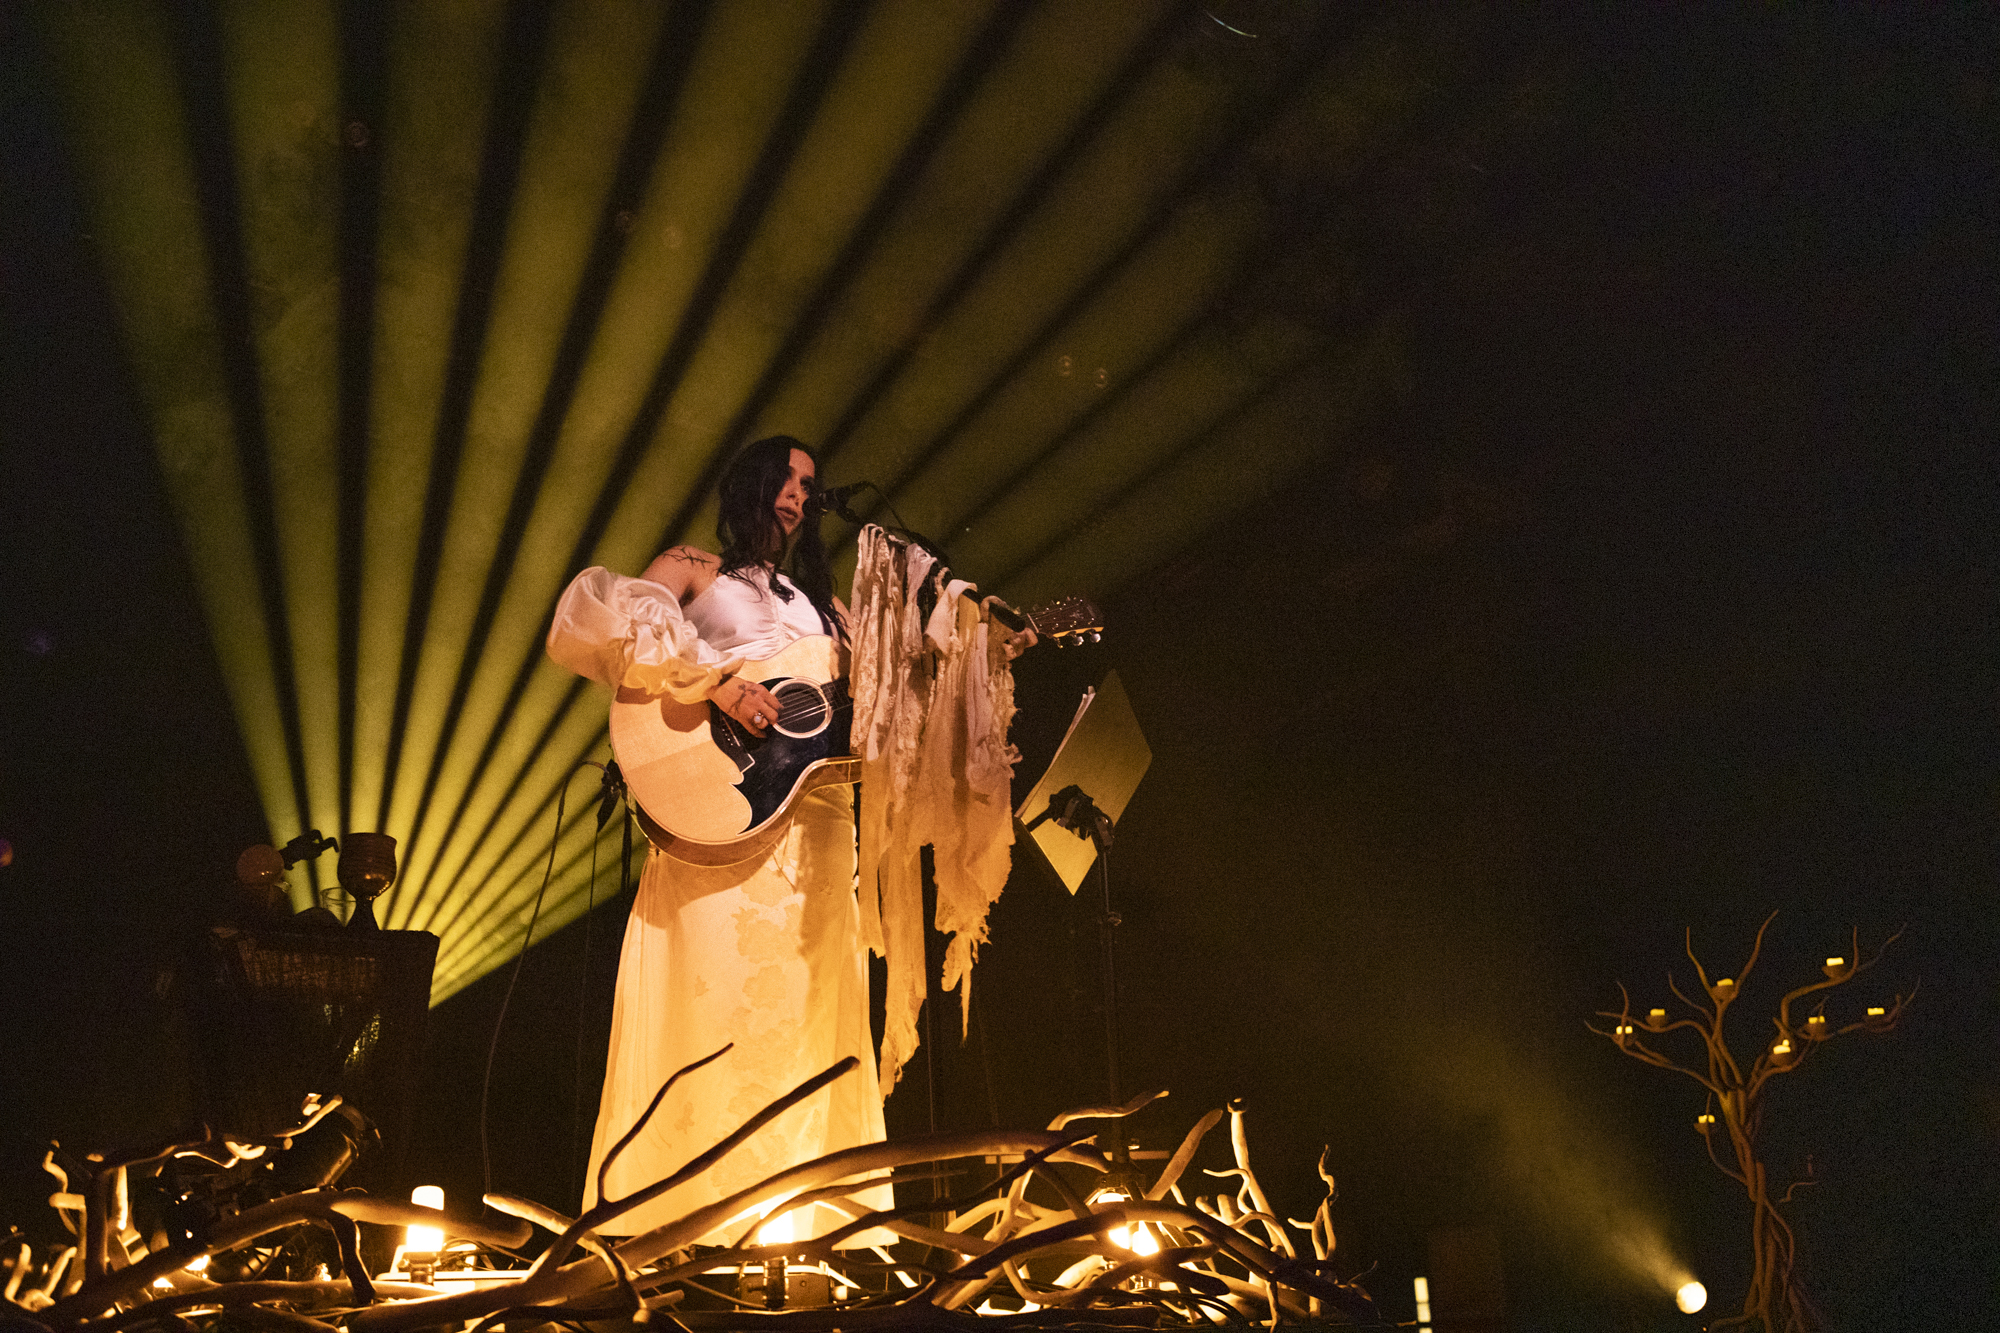 Chelsea Wolfe plays at Brooklyn Steel in Williamsburg, Brooklyn, New York on Nov. 1, 2019. (© Michael Katzif - Do not use or republish without prior consent.)